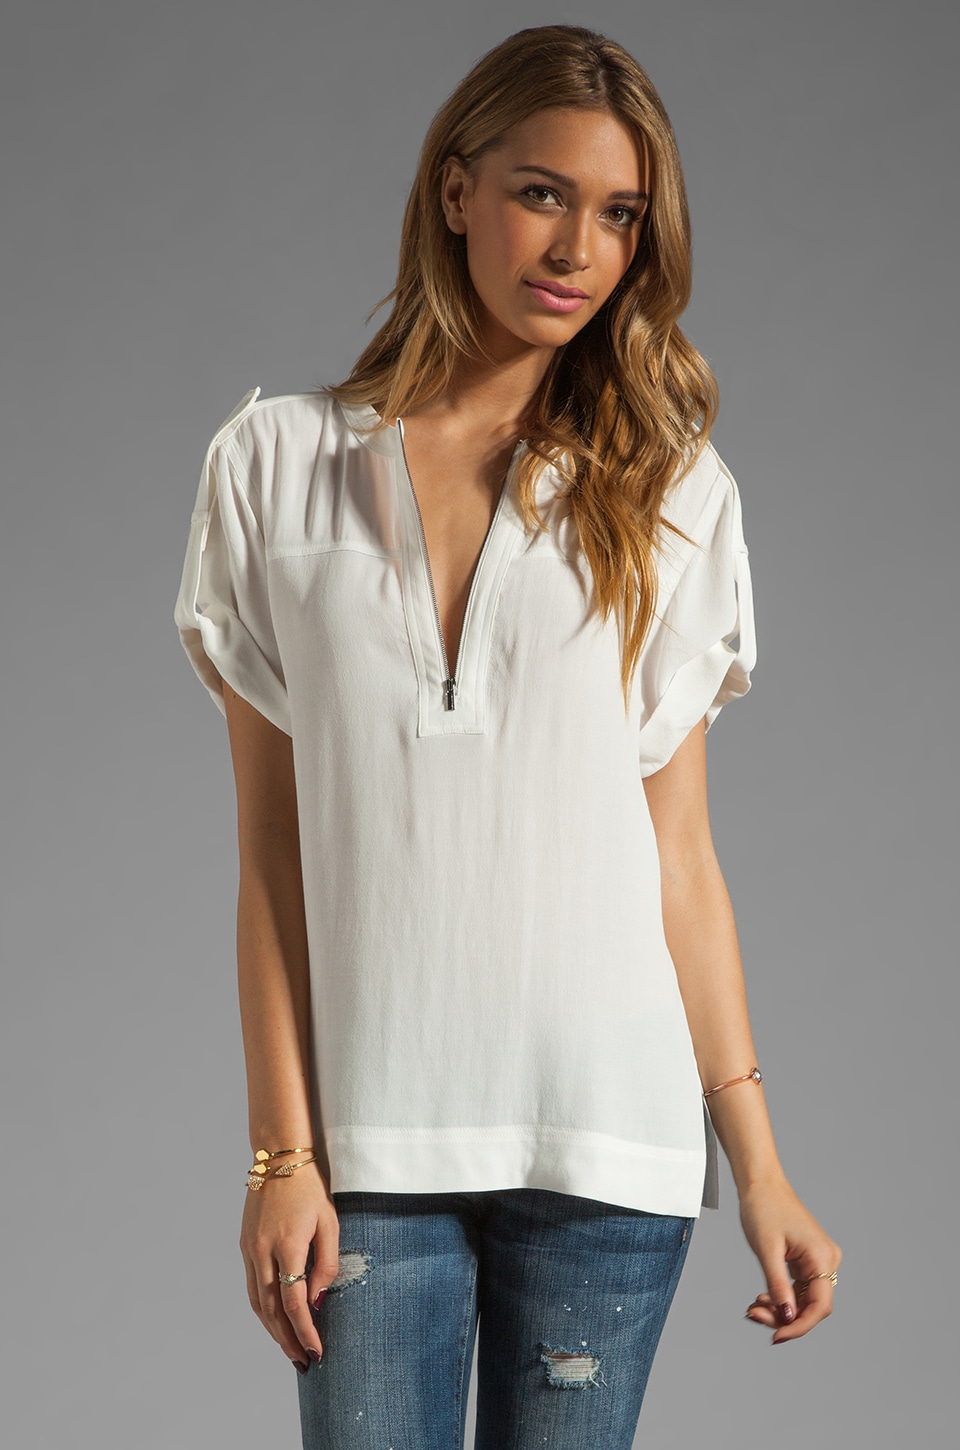 BCBGMAXAZRIA Blouse in Off White